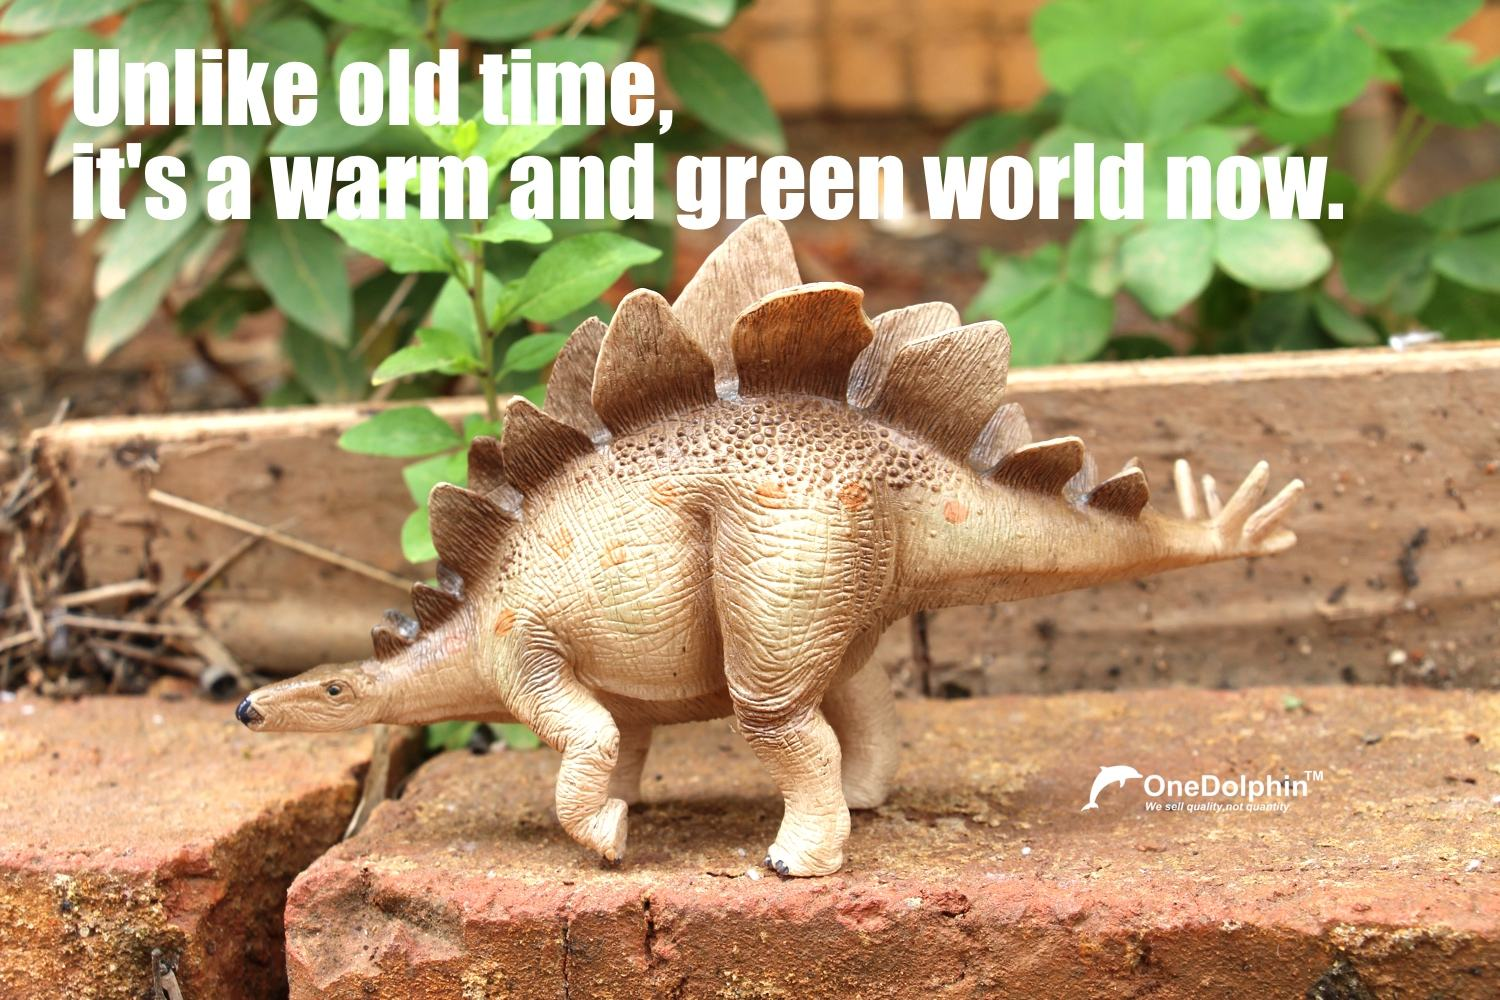 Stegosaurus:Unlike old times,it's a warm and green world now.